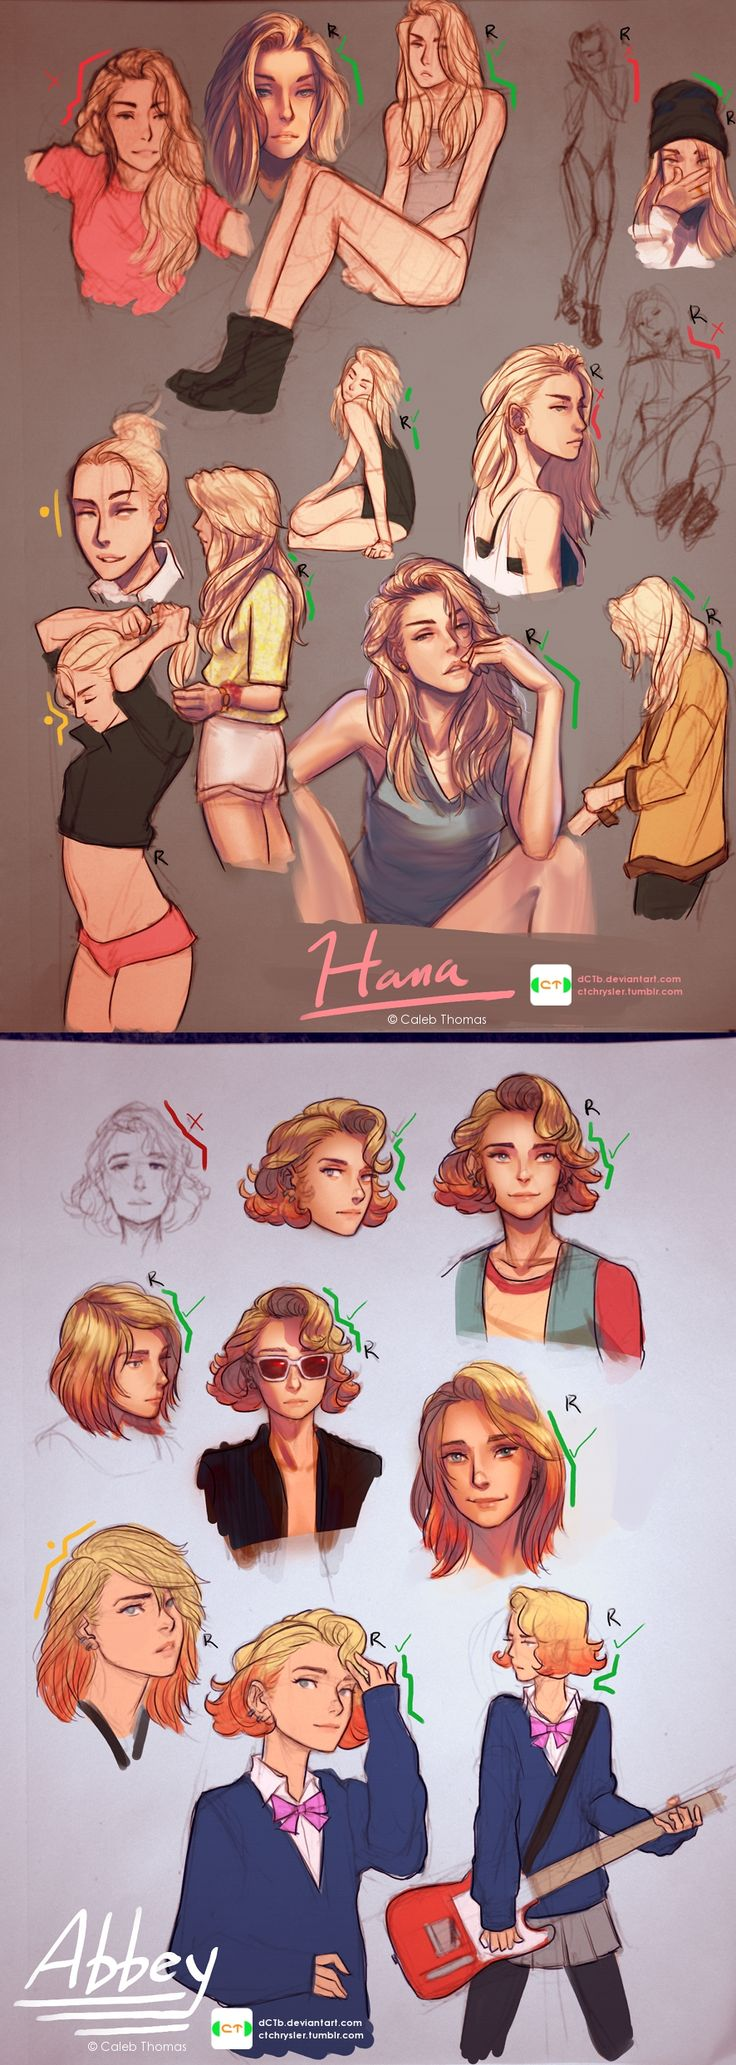 Hana and Abbey sketches by dCTb.deviantart.com on @deviantART